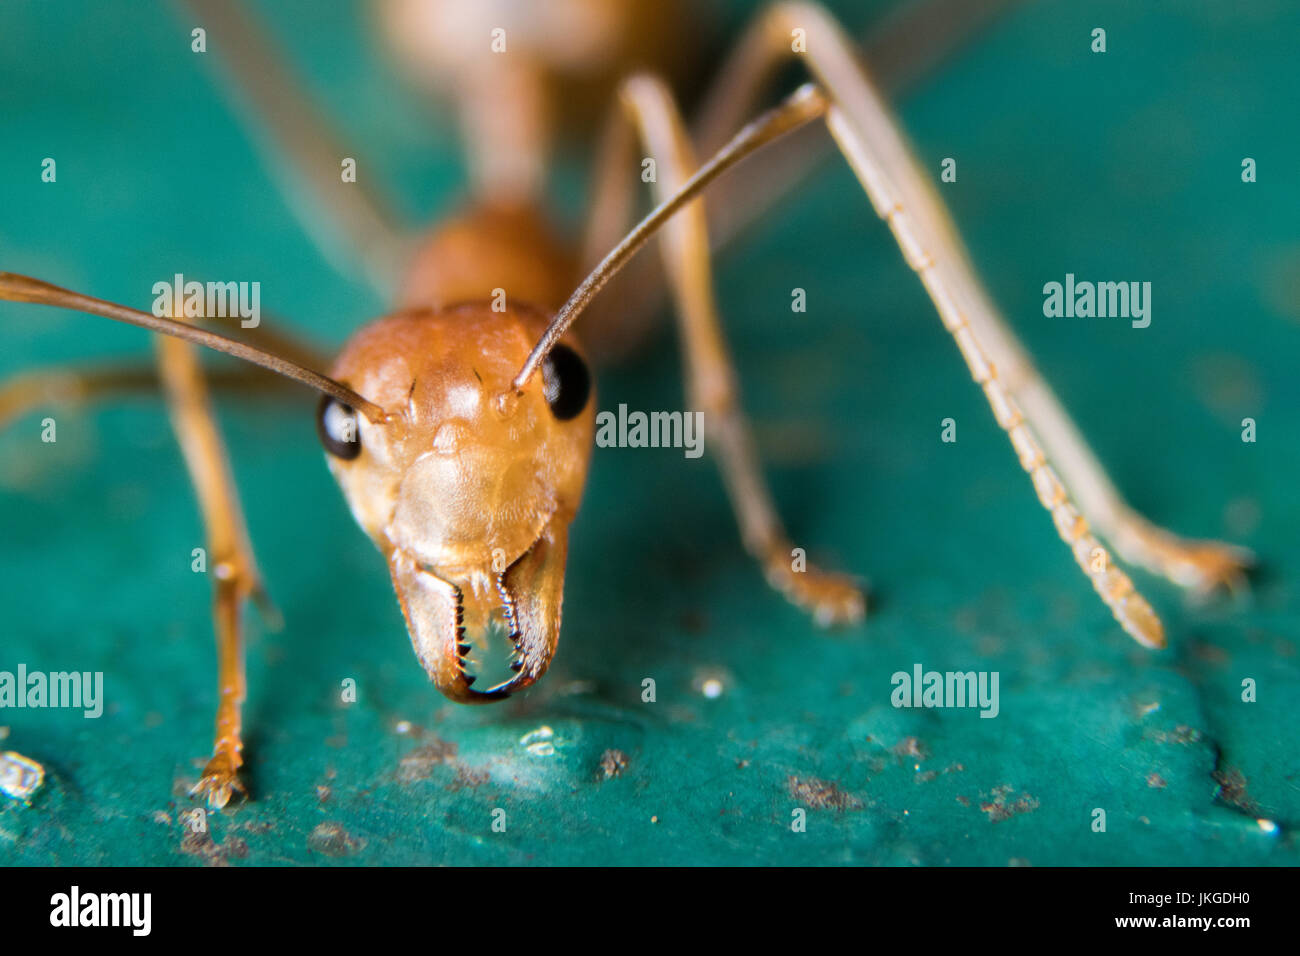 Red ant - Stock Image